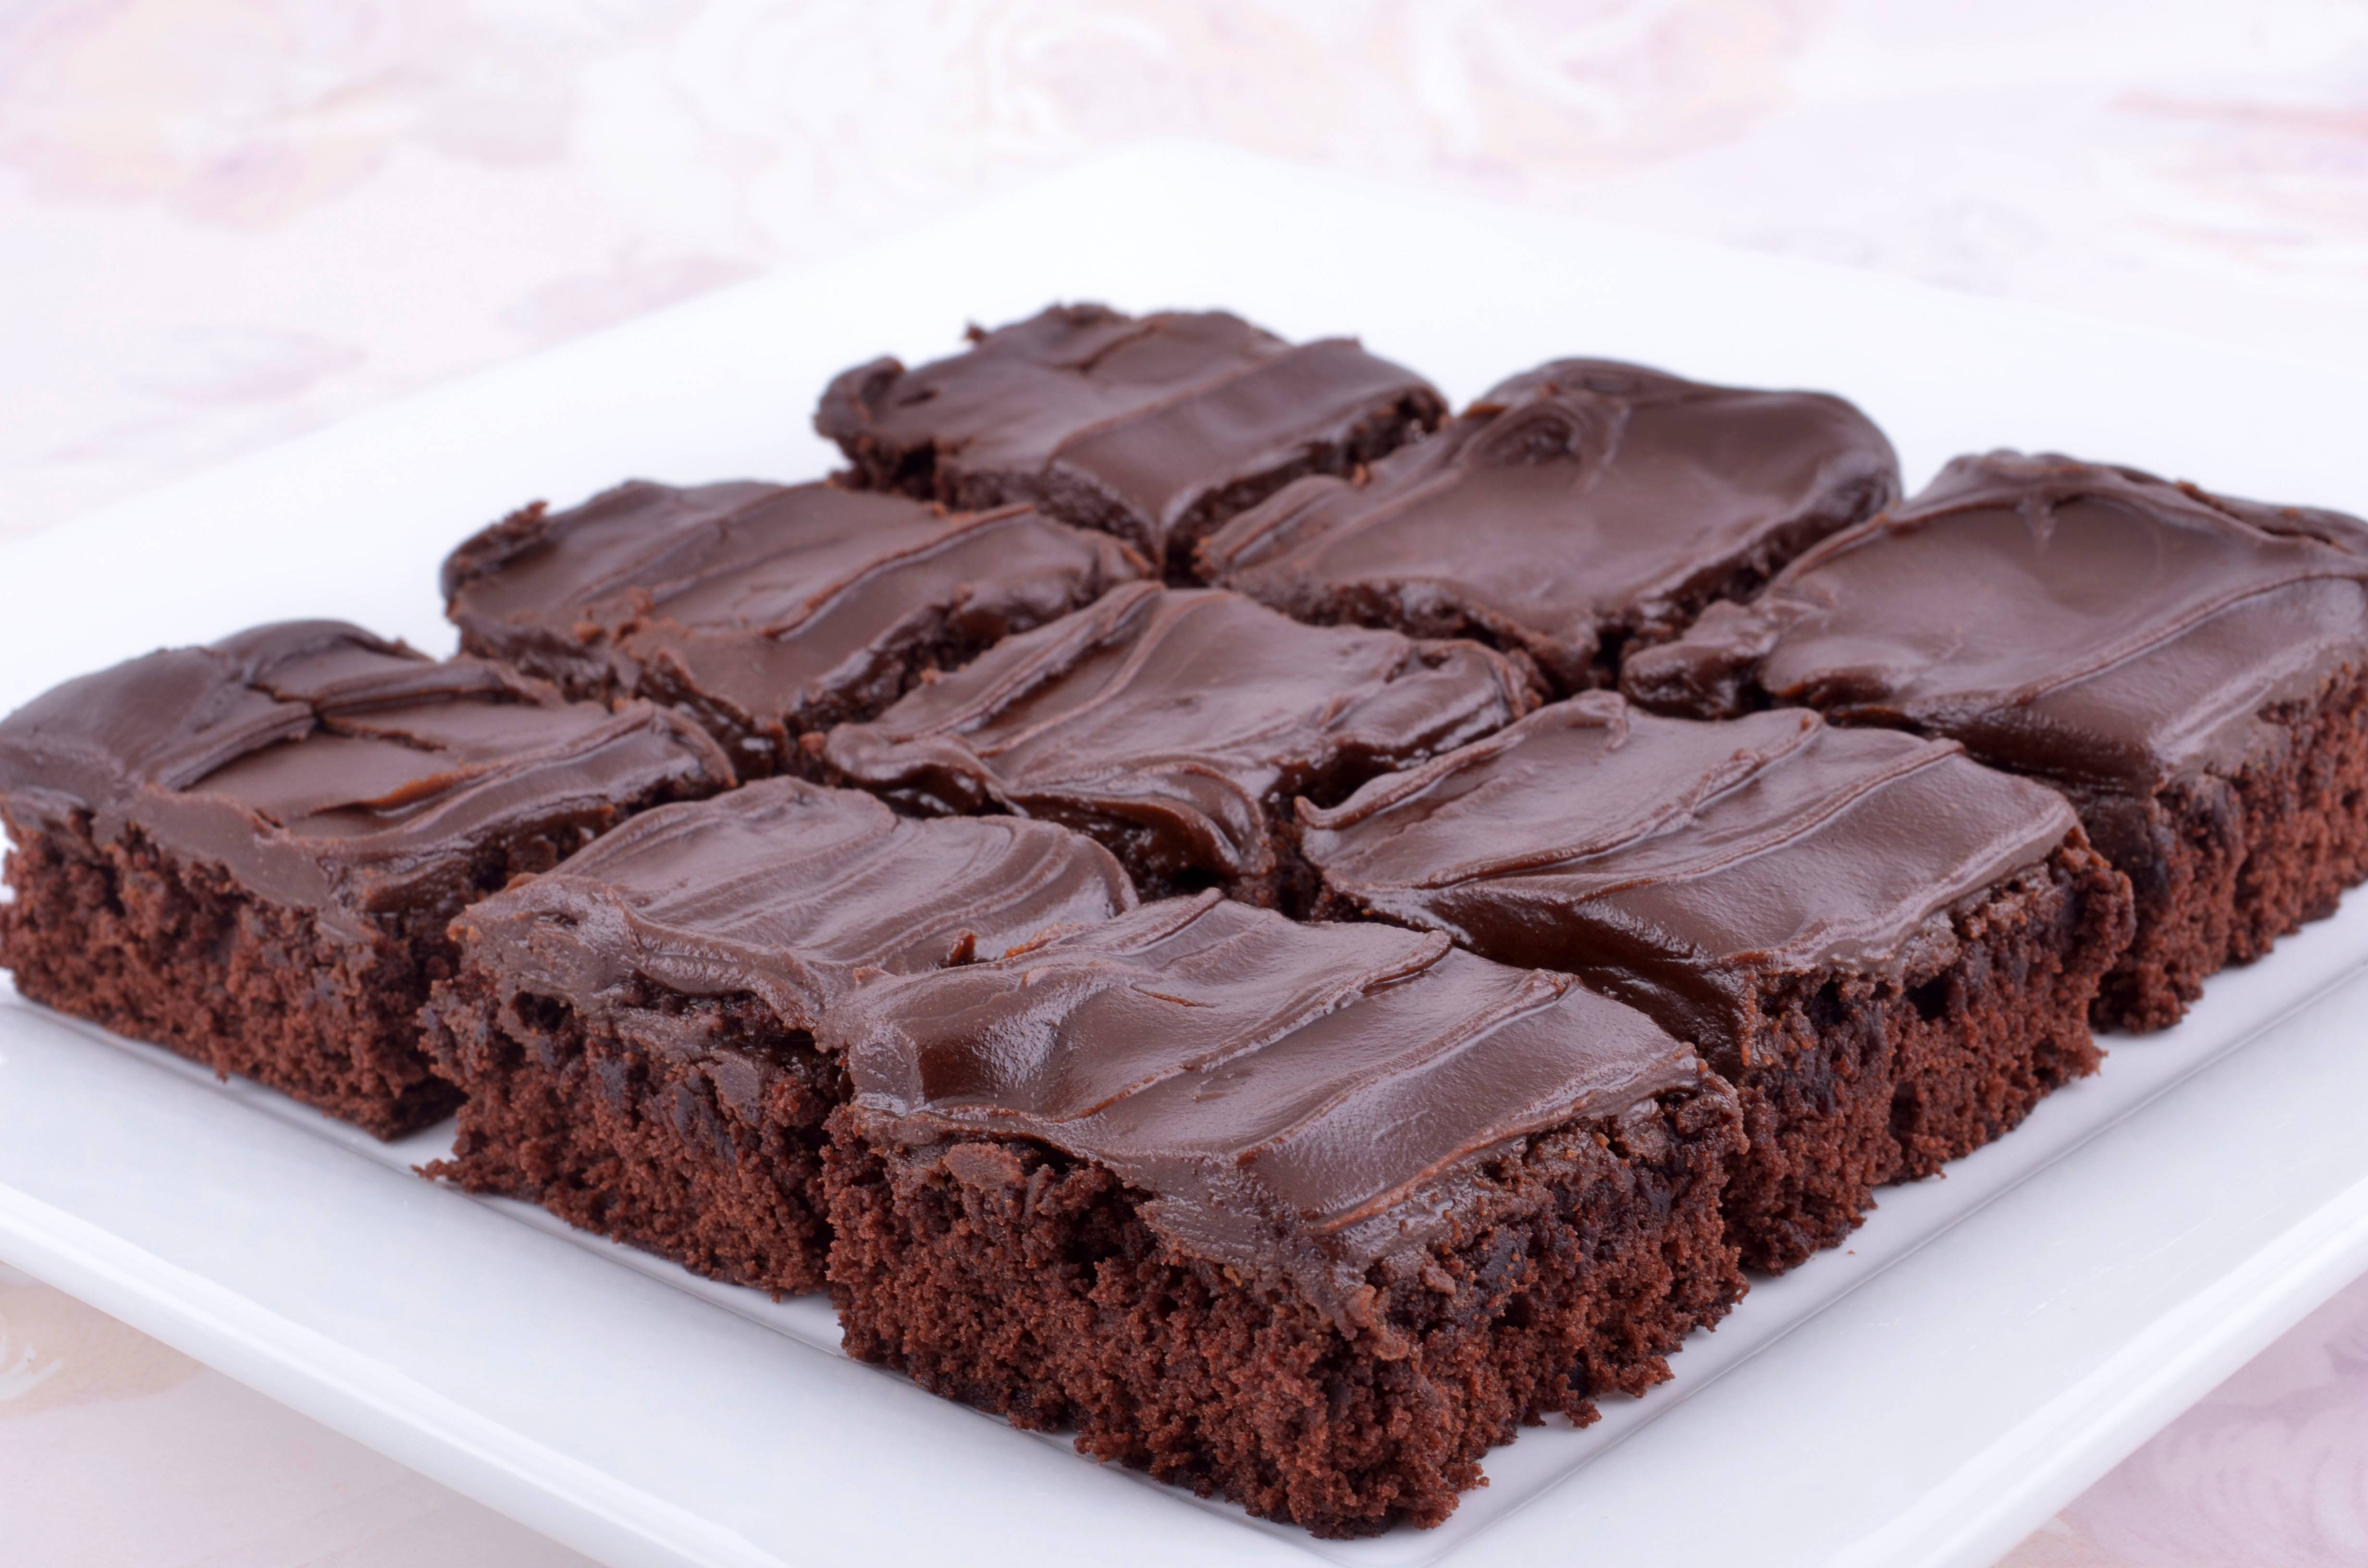 Cinnamon and cayenne pepper perk up chocolate brownies; the sweet ganache frosting counteracts the heat.